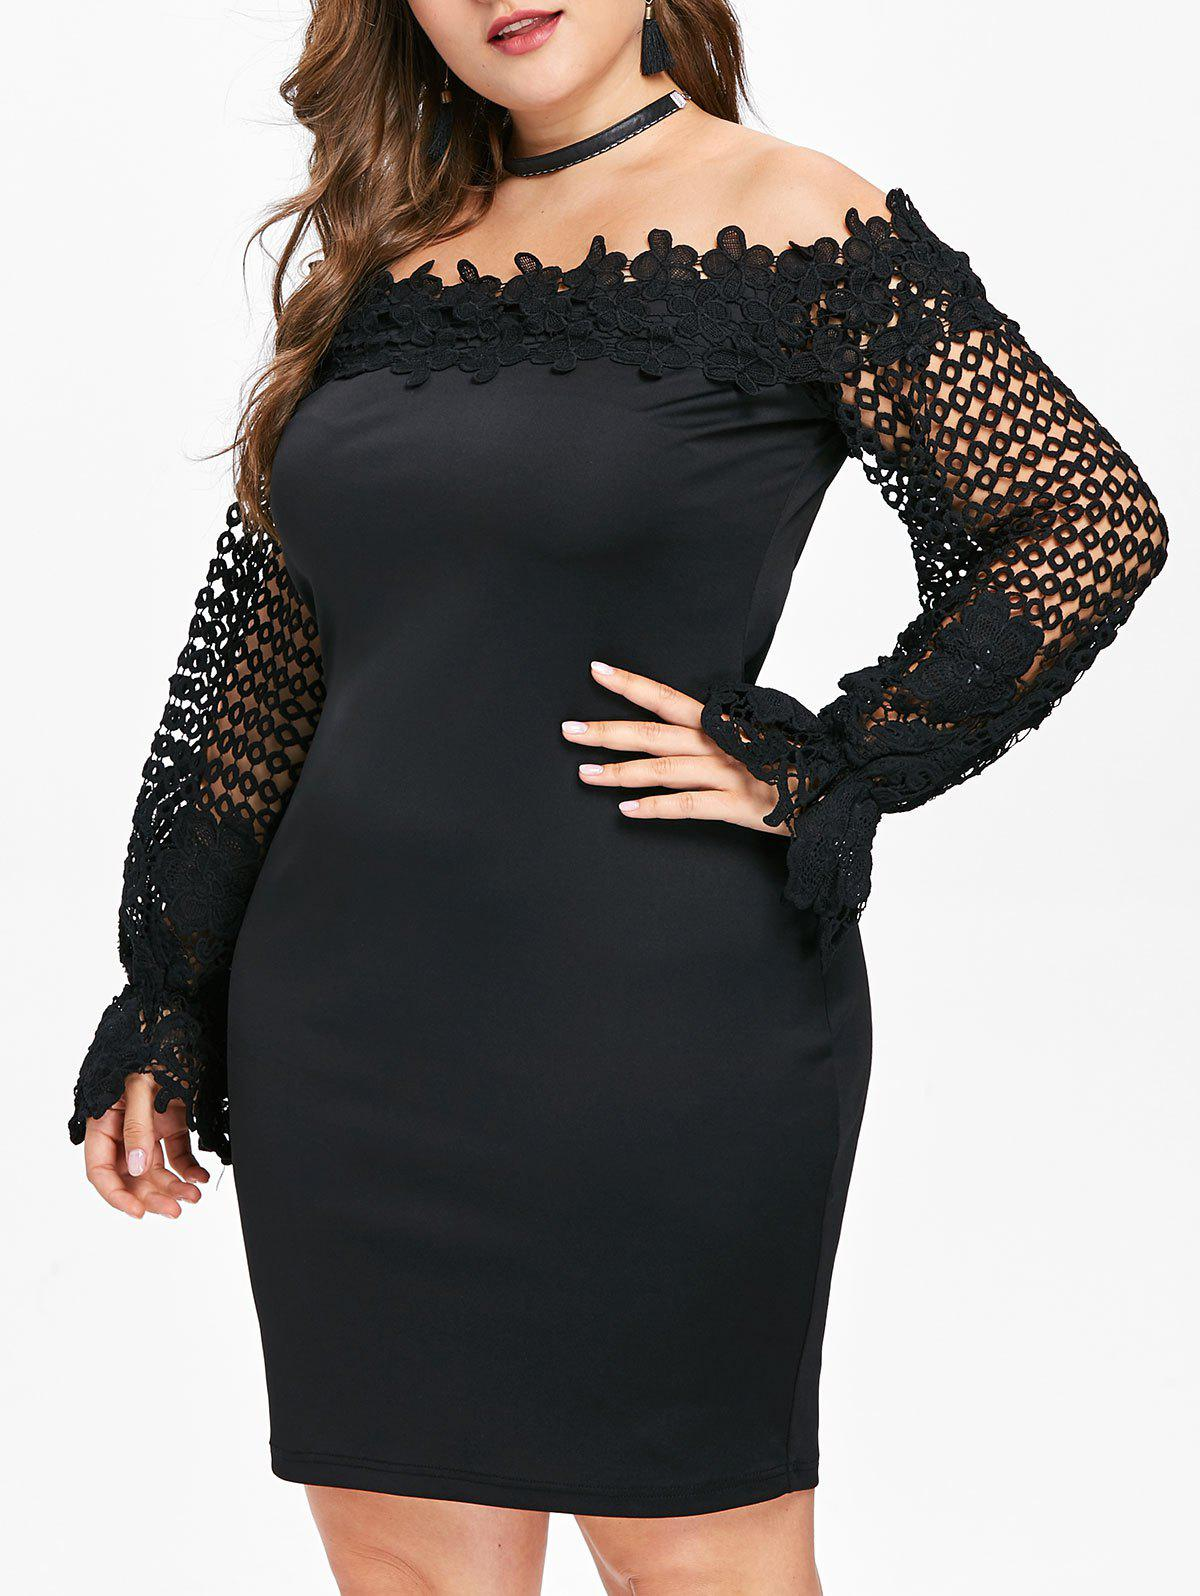 61c2f326d88df 41% OFF] Applique Off The Shoulder Plus Size Bodycon Dress | Rosegal